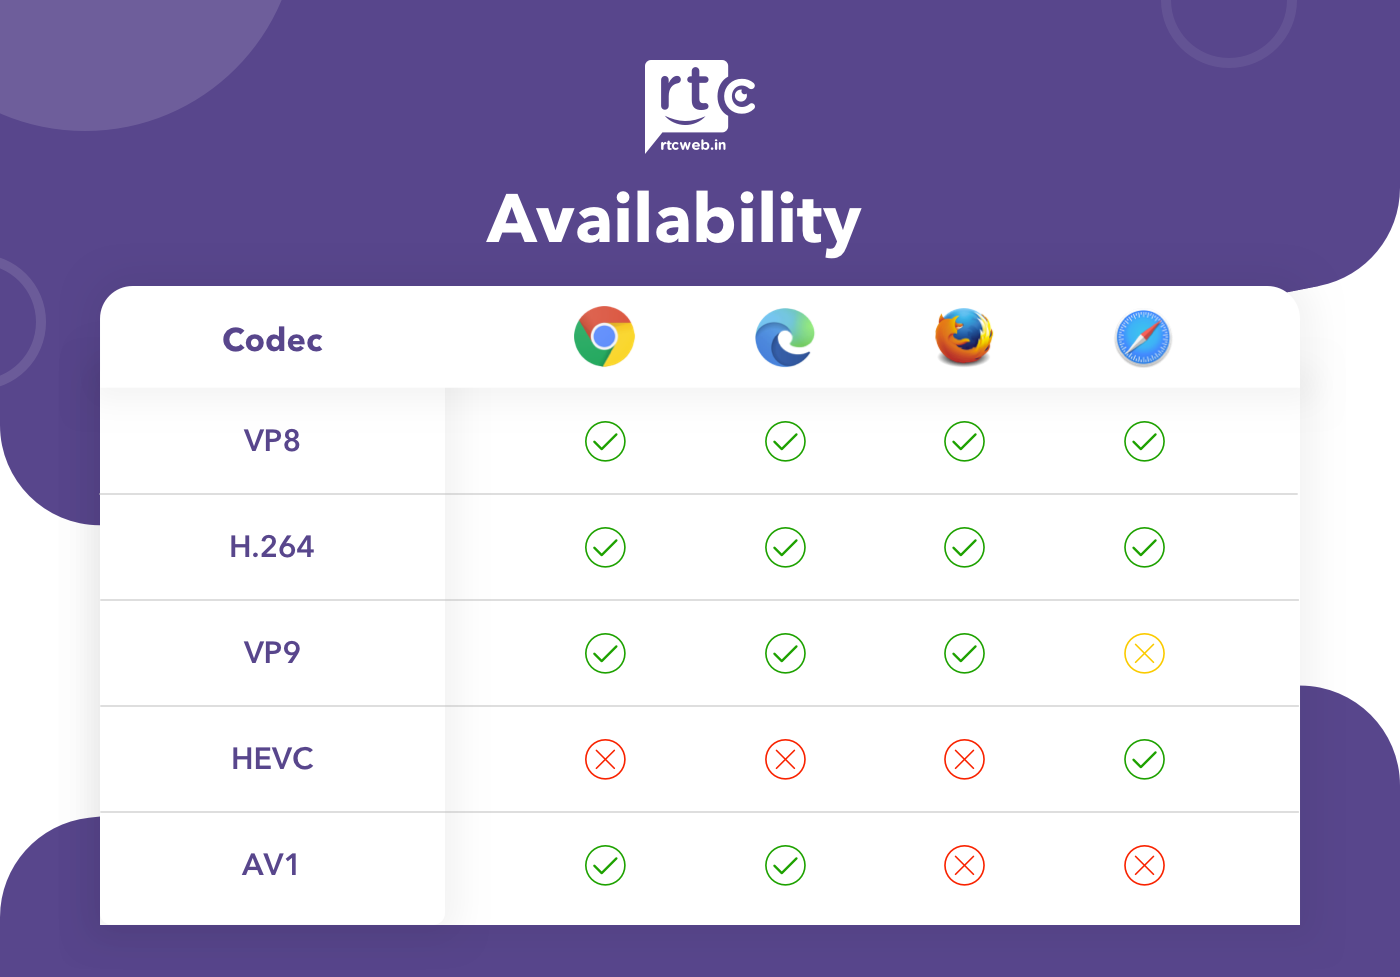 Availability of video codecs in browsers